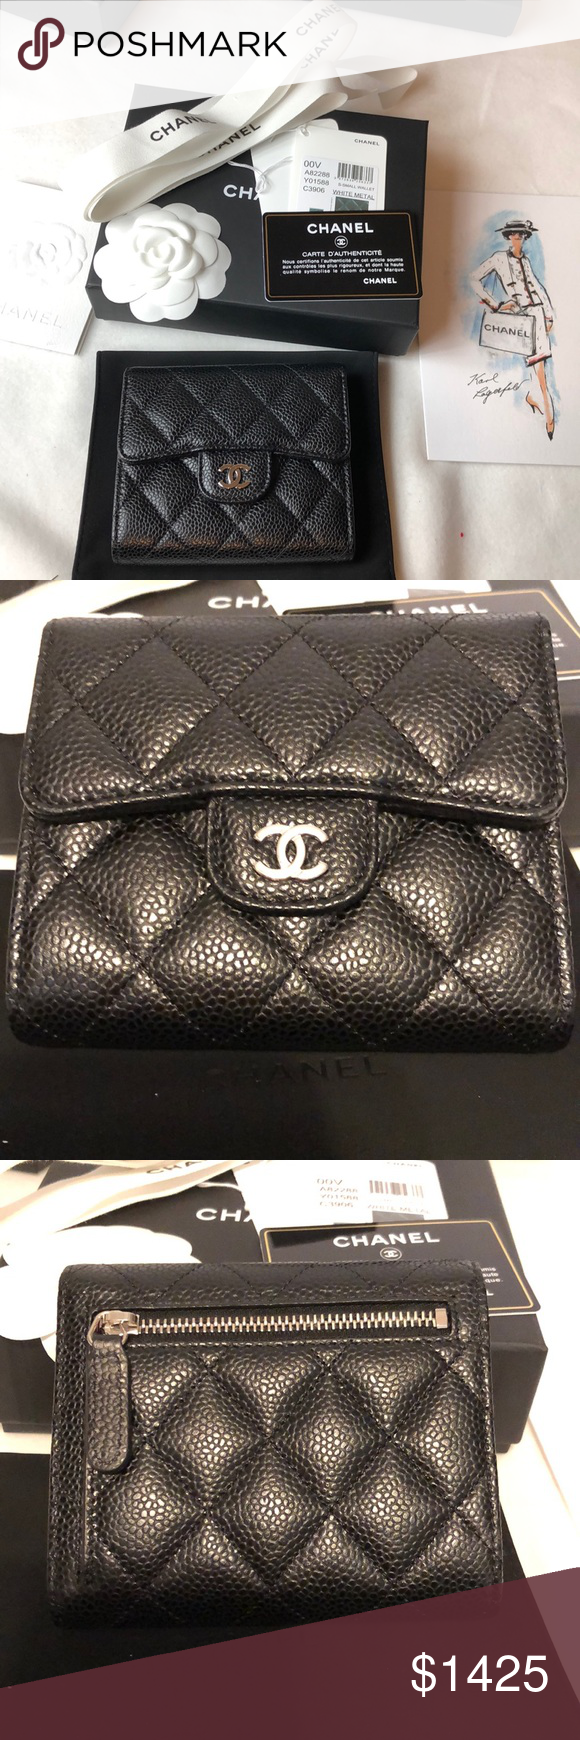 78ac5a5c19a5 BN Chanel Classic Medium Compact Flap Wallet Brand New Chanel Classic  Trifold Flap Compact Wallet Black